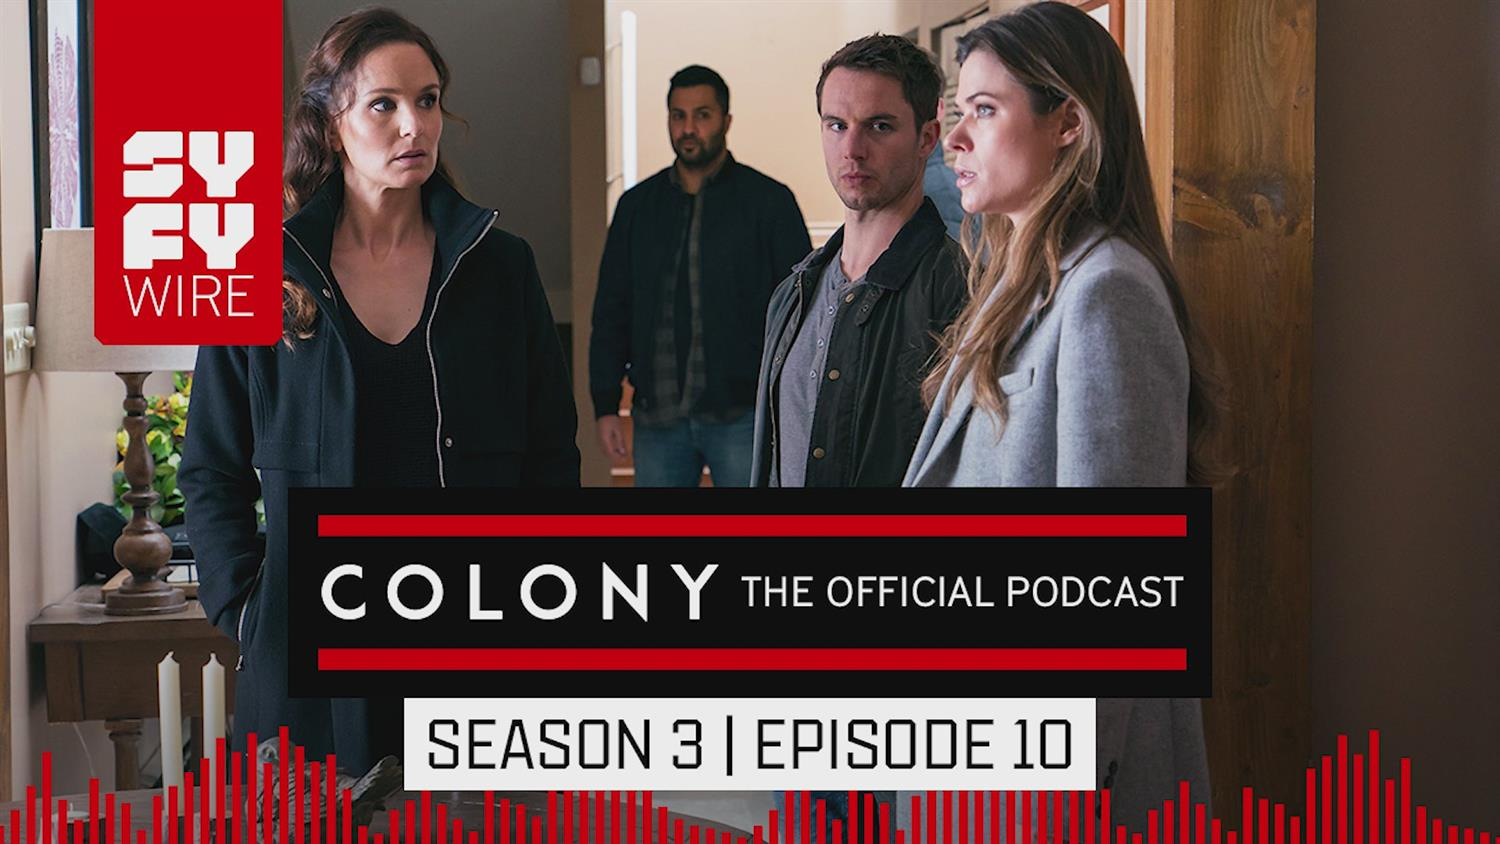 Colony The Official Podcast: Season 3, Episode 10